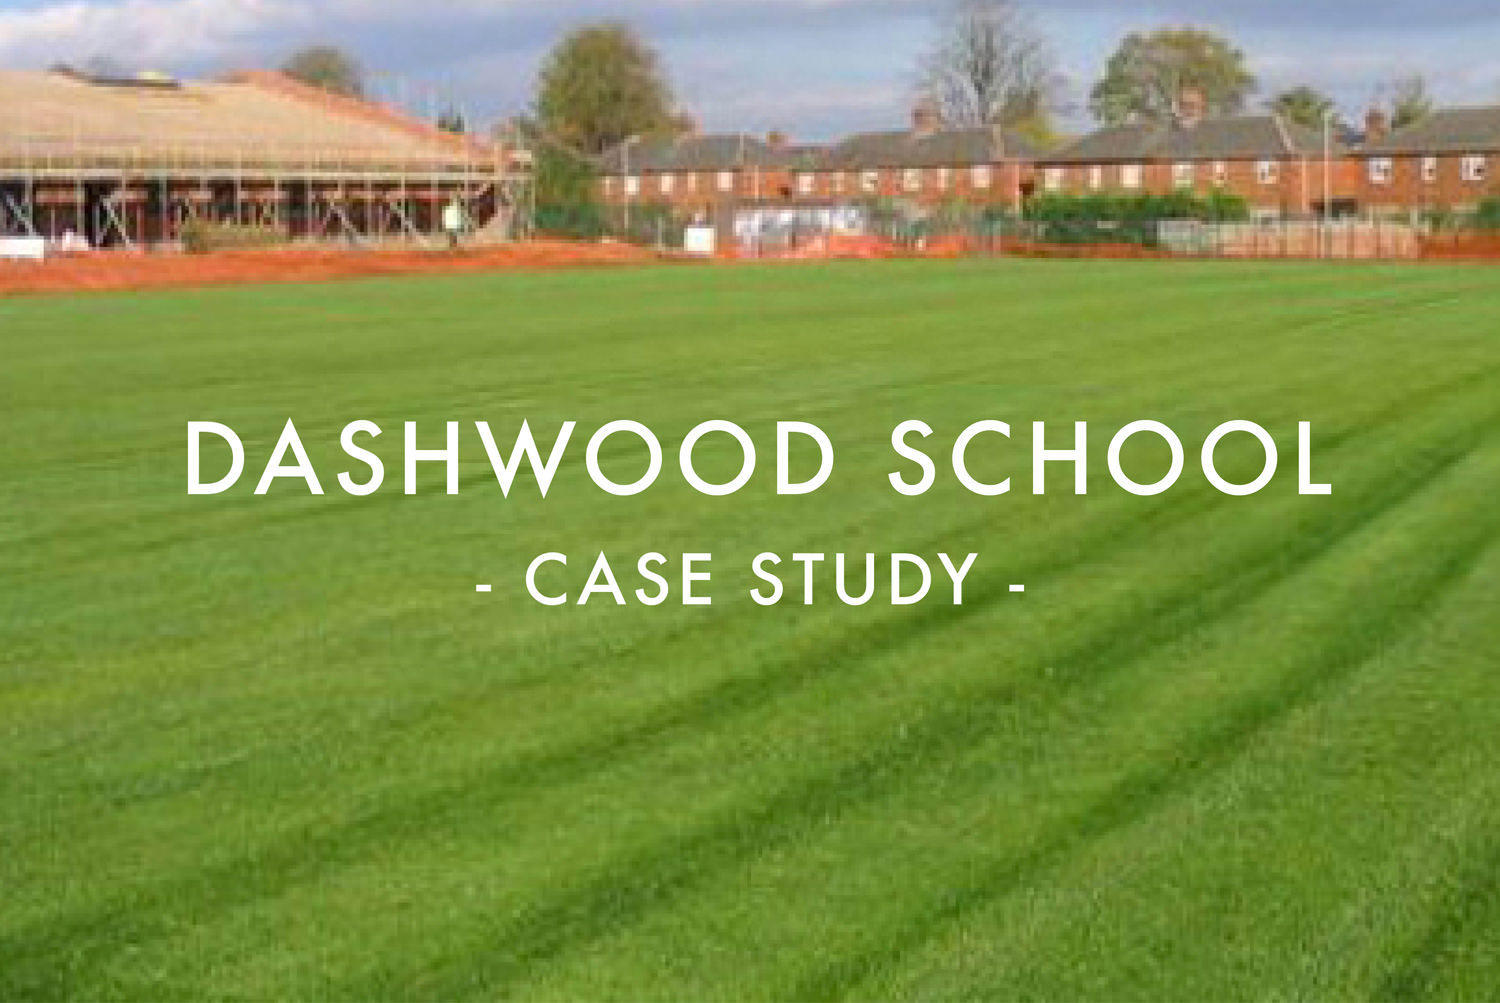 Dashwood School Case Study